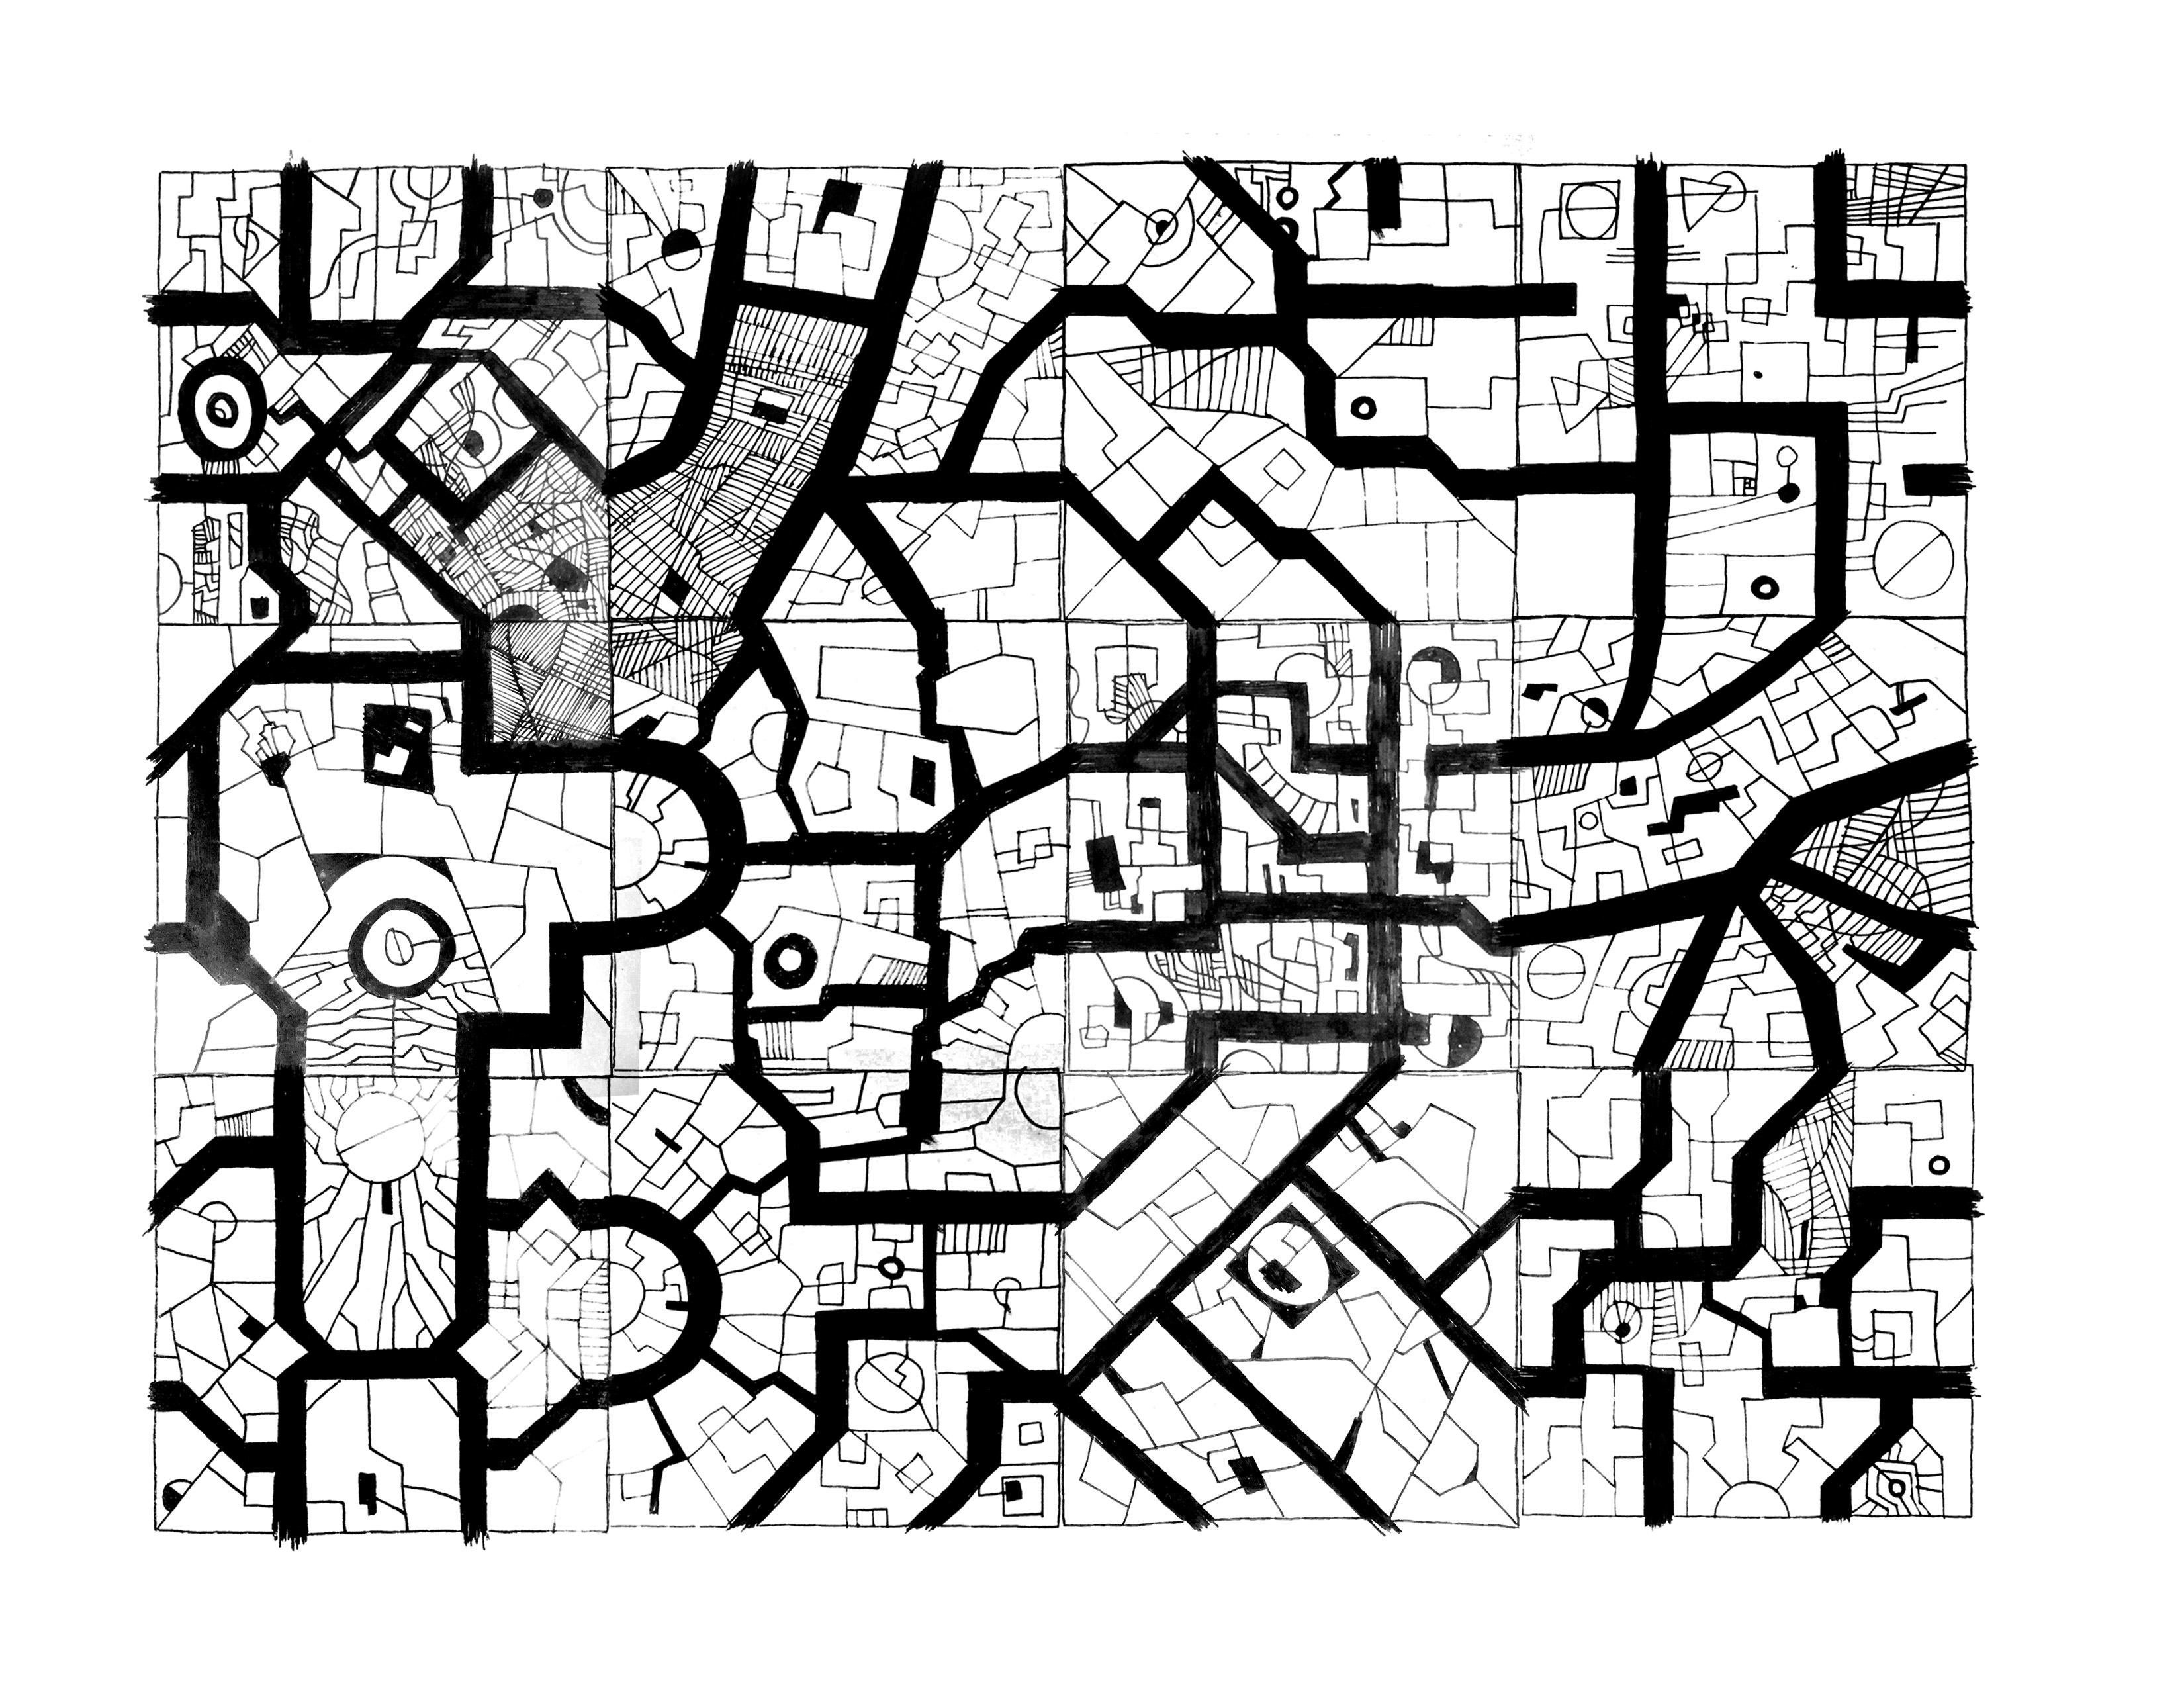 An Urban Geomorph for Nullhack. Just slice this badboy up, twist and turn it and duplicate it until you have a city of big enough size for your game.